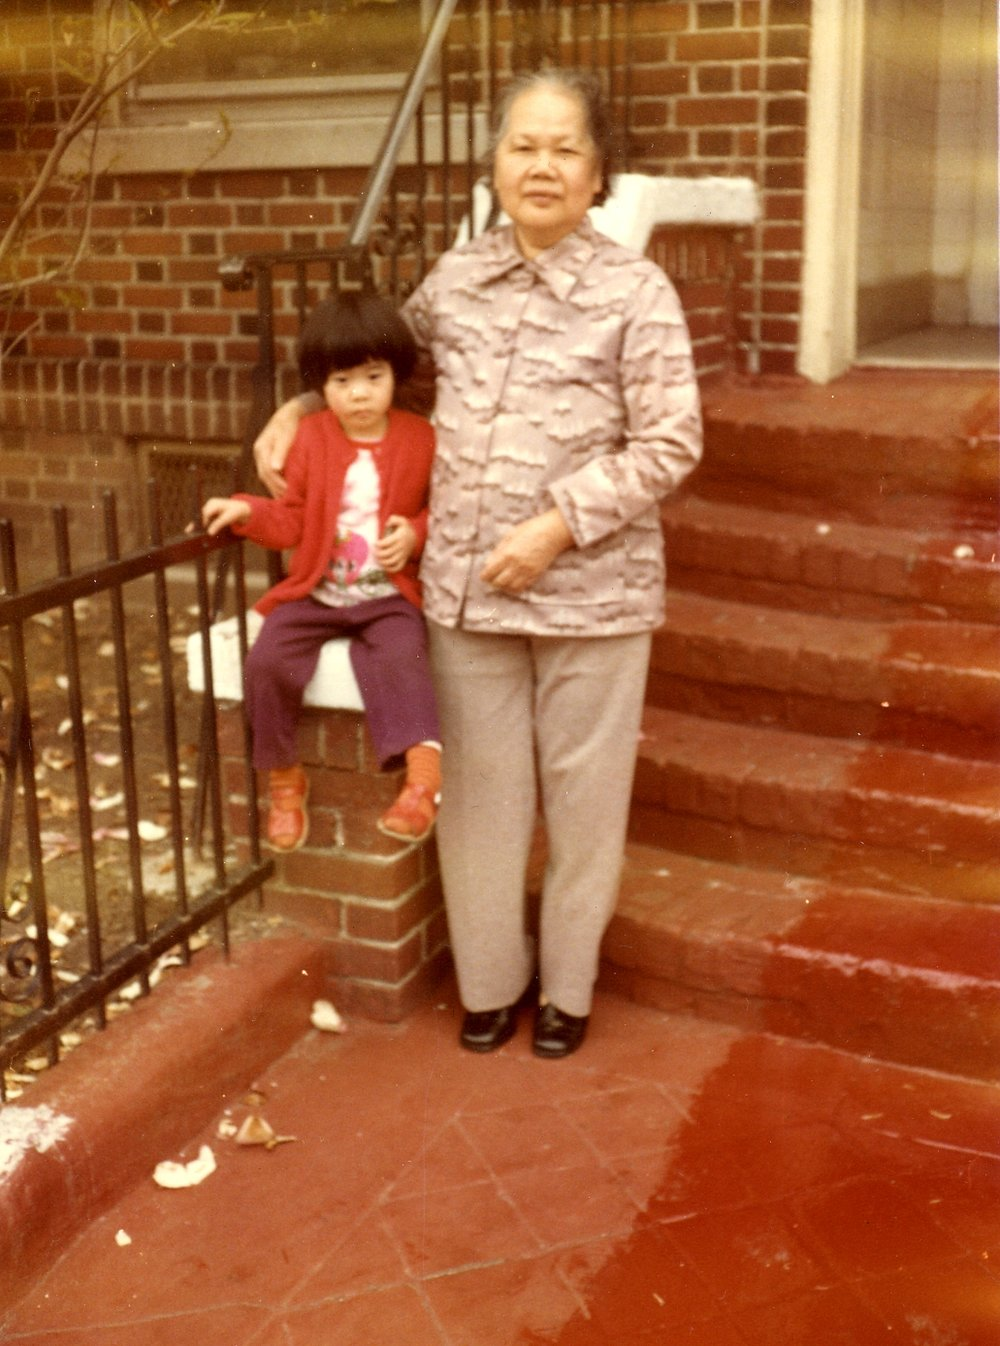 Artist Betty Yu and her grandma, Kam Tze in front of their home in Sunset Park, Brooklyn (circa 1981)